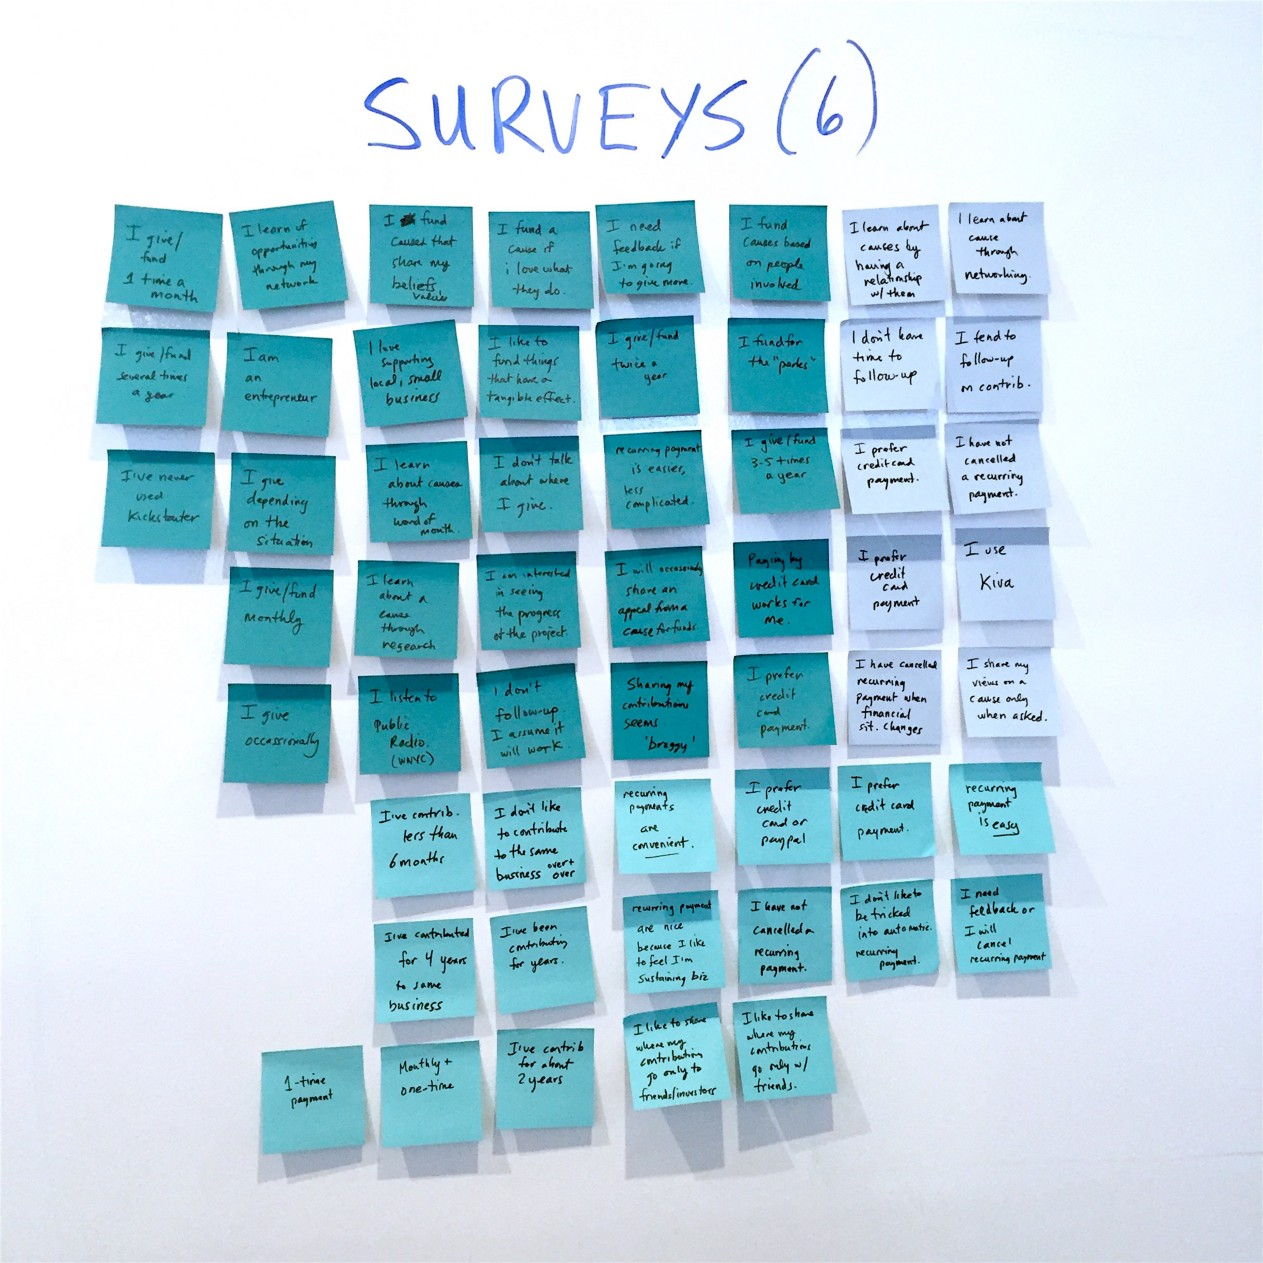 Our survey results generated a lot of responses to synthesize.